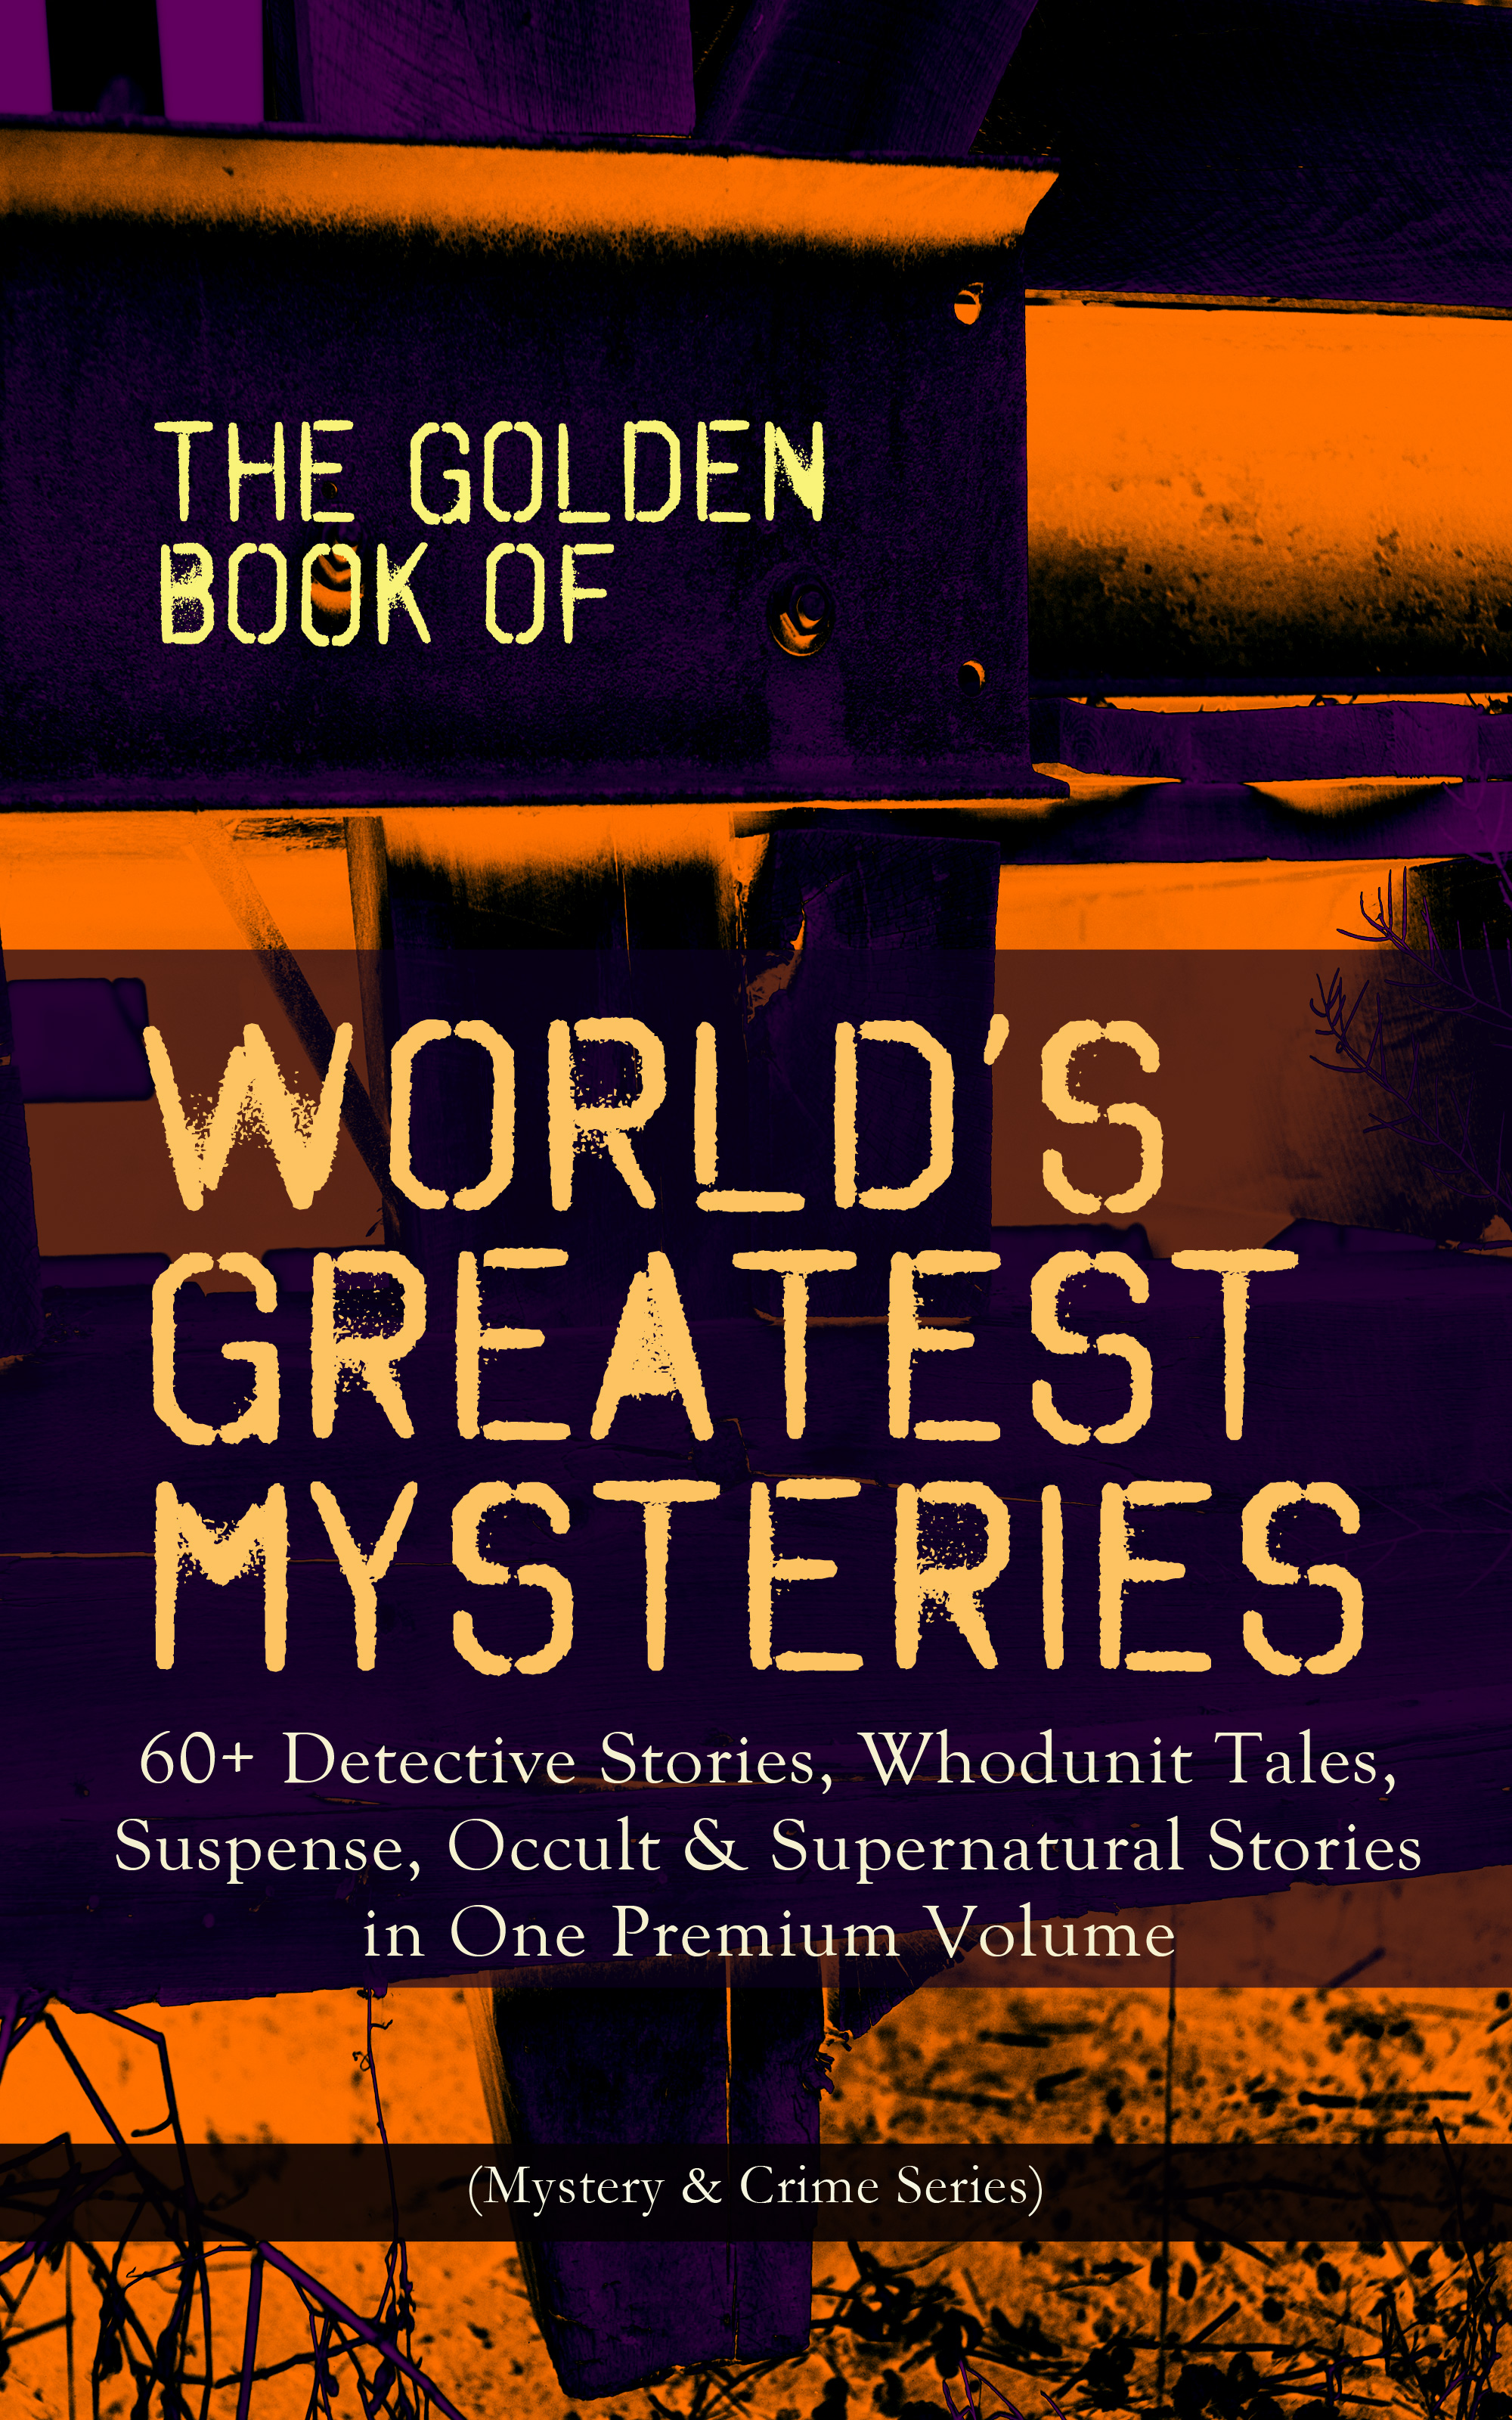 the golden book of worlds greatest mysteries 60 detective stories